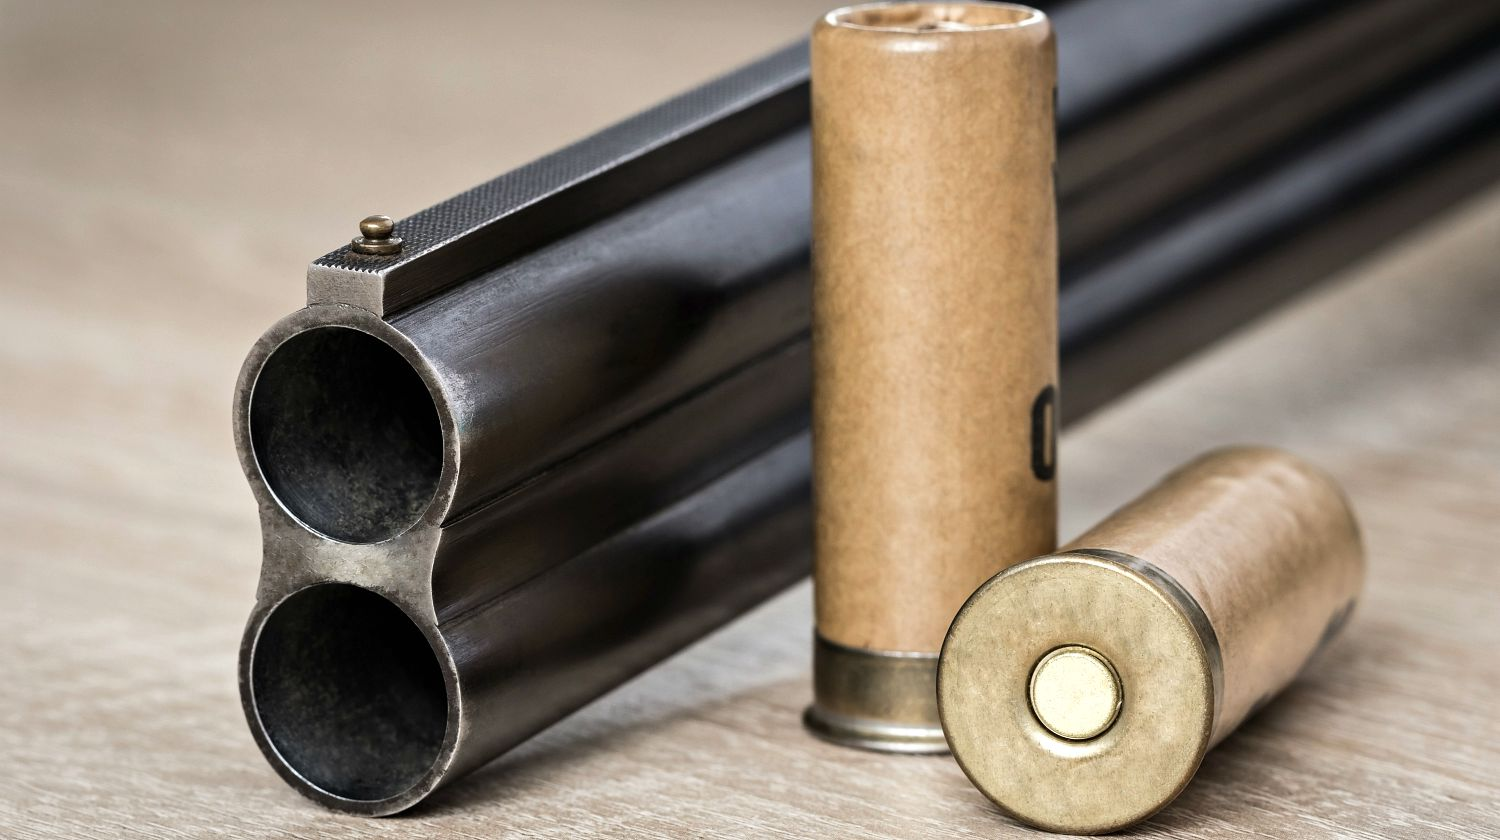 Feature | Barrel shotgun with two bullets | How To Make Your Own Black Pipe Shotgun (Hypothetically)